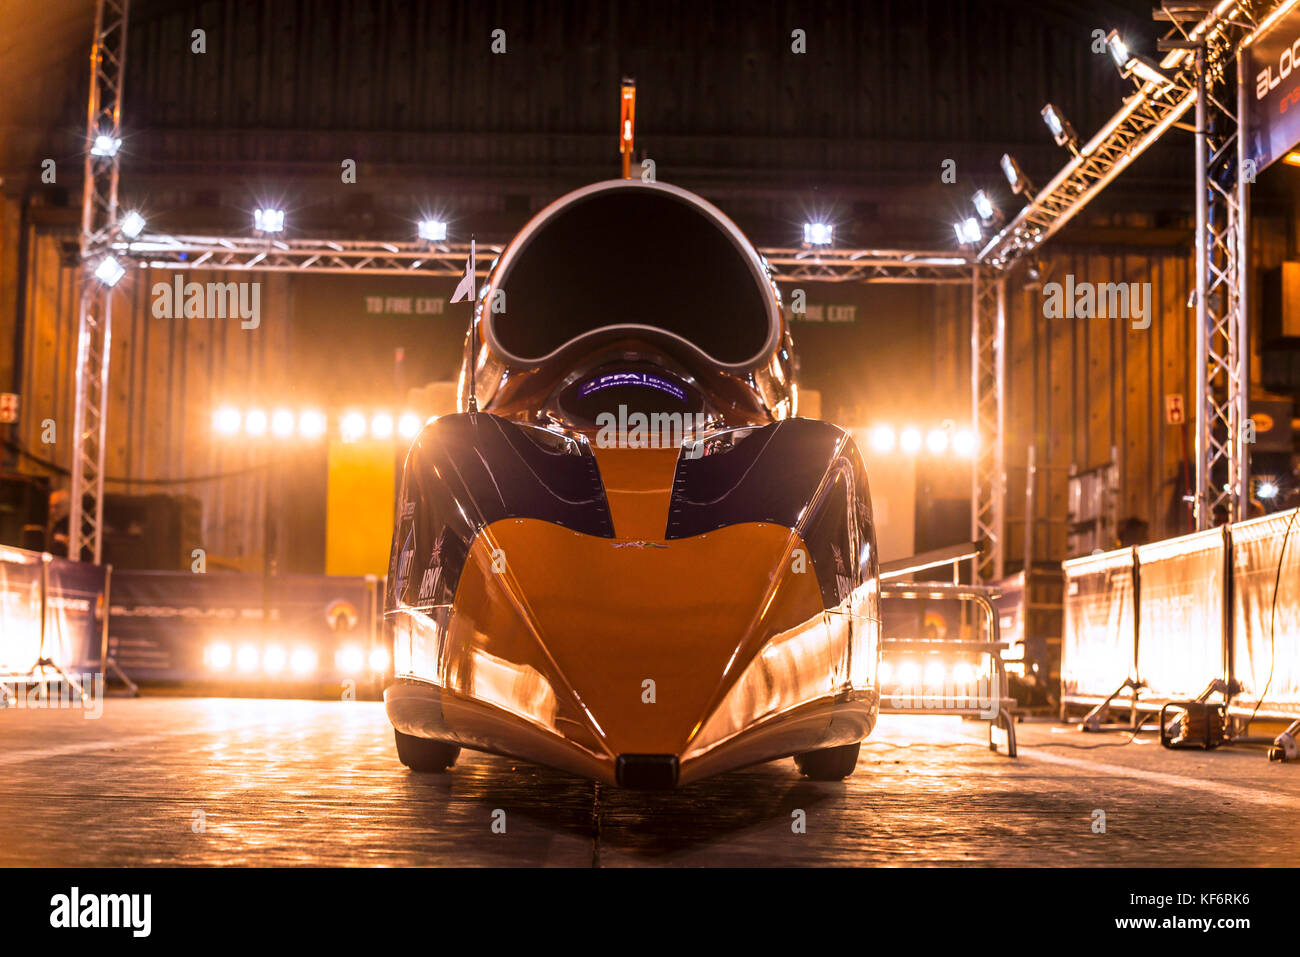 bloodhound-ssc-supersonic-car-being-prepared-prior-to-carrying-out-KF6RK6.jpg